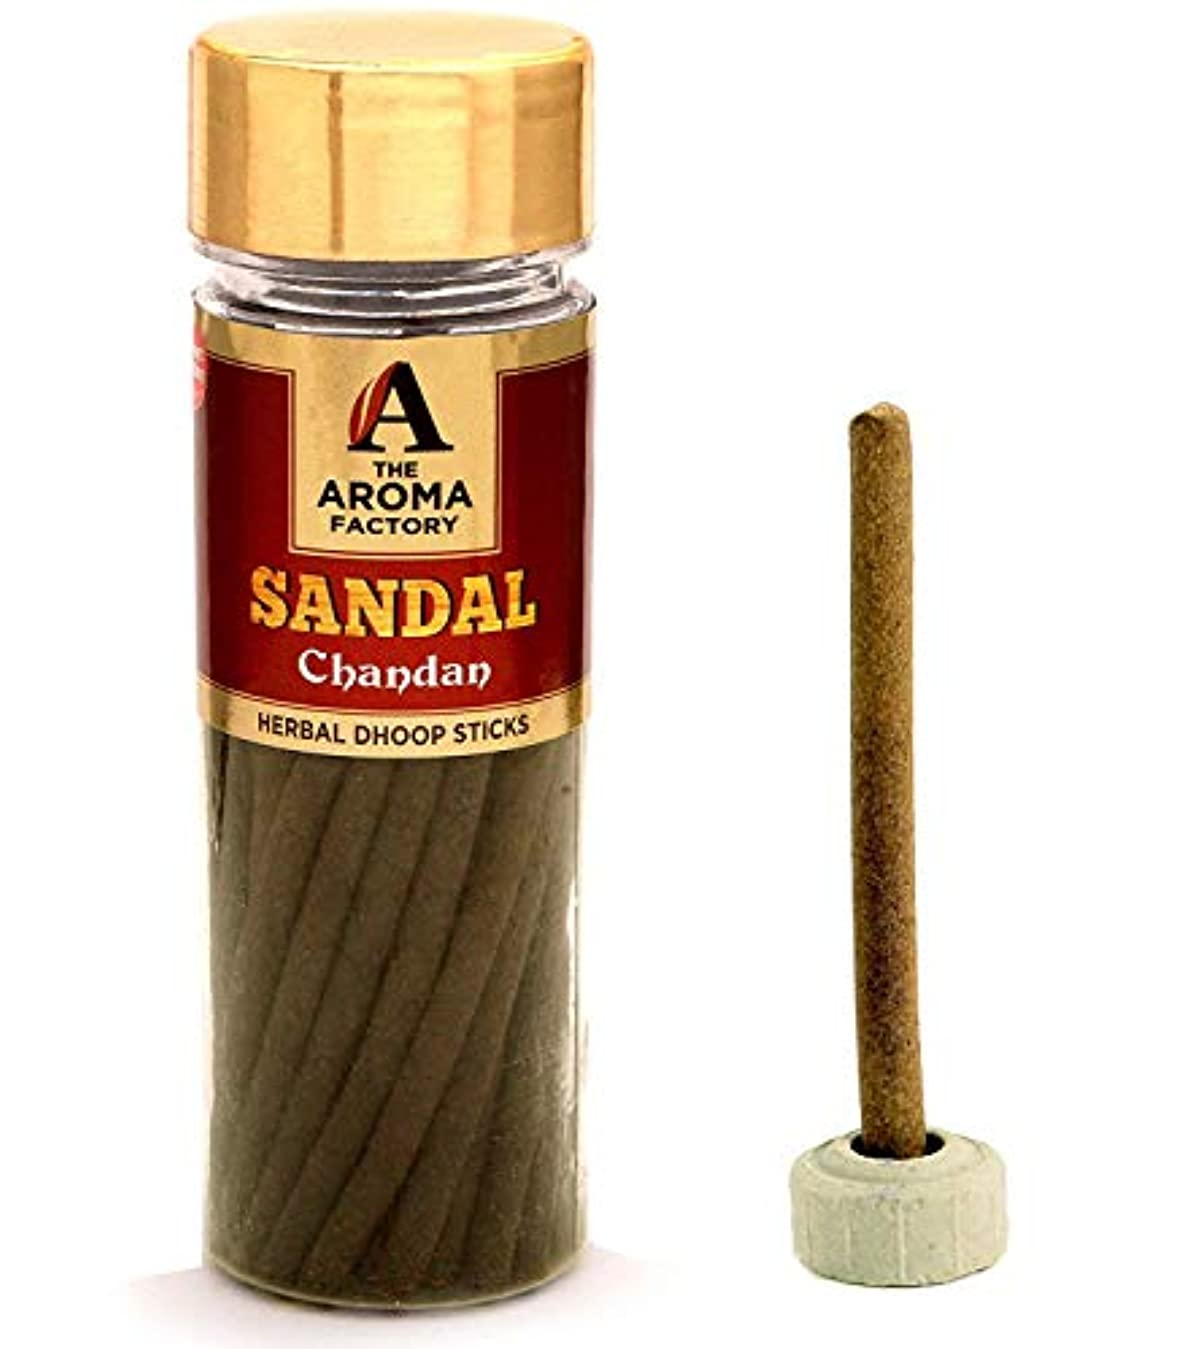 一目高架朝ごはんThe Aroma Factory Chandan Sandal Woods Dhoop Batti [Free Stand] (Bottle Pack x 40 Sticks)